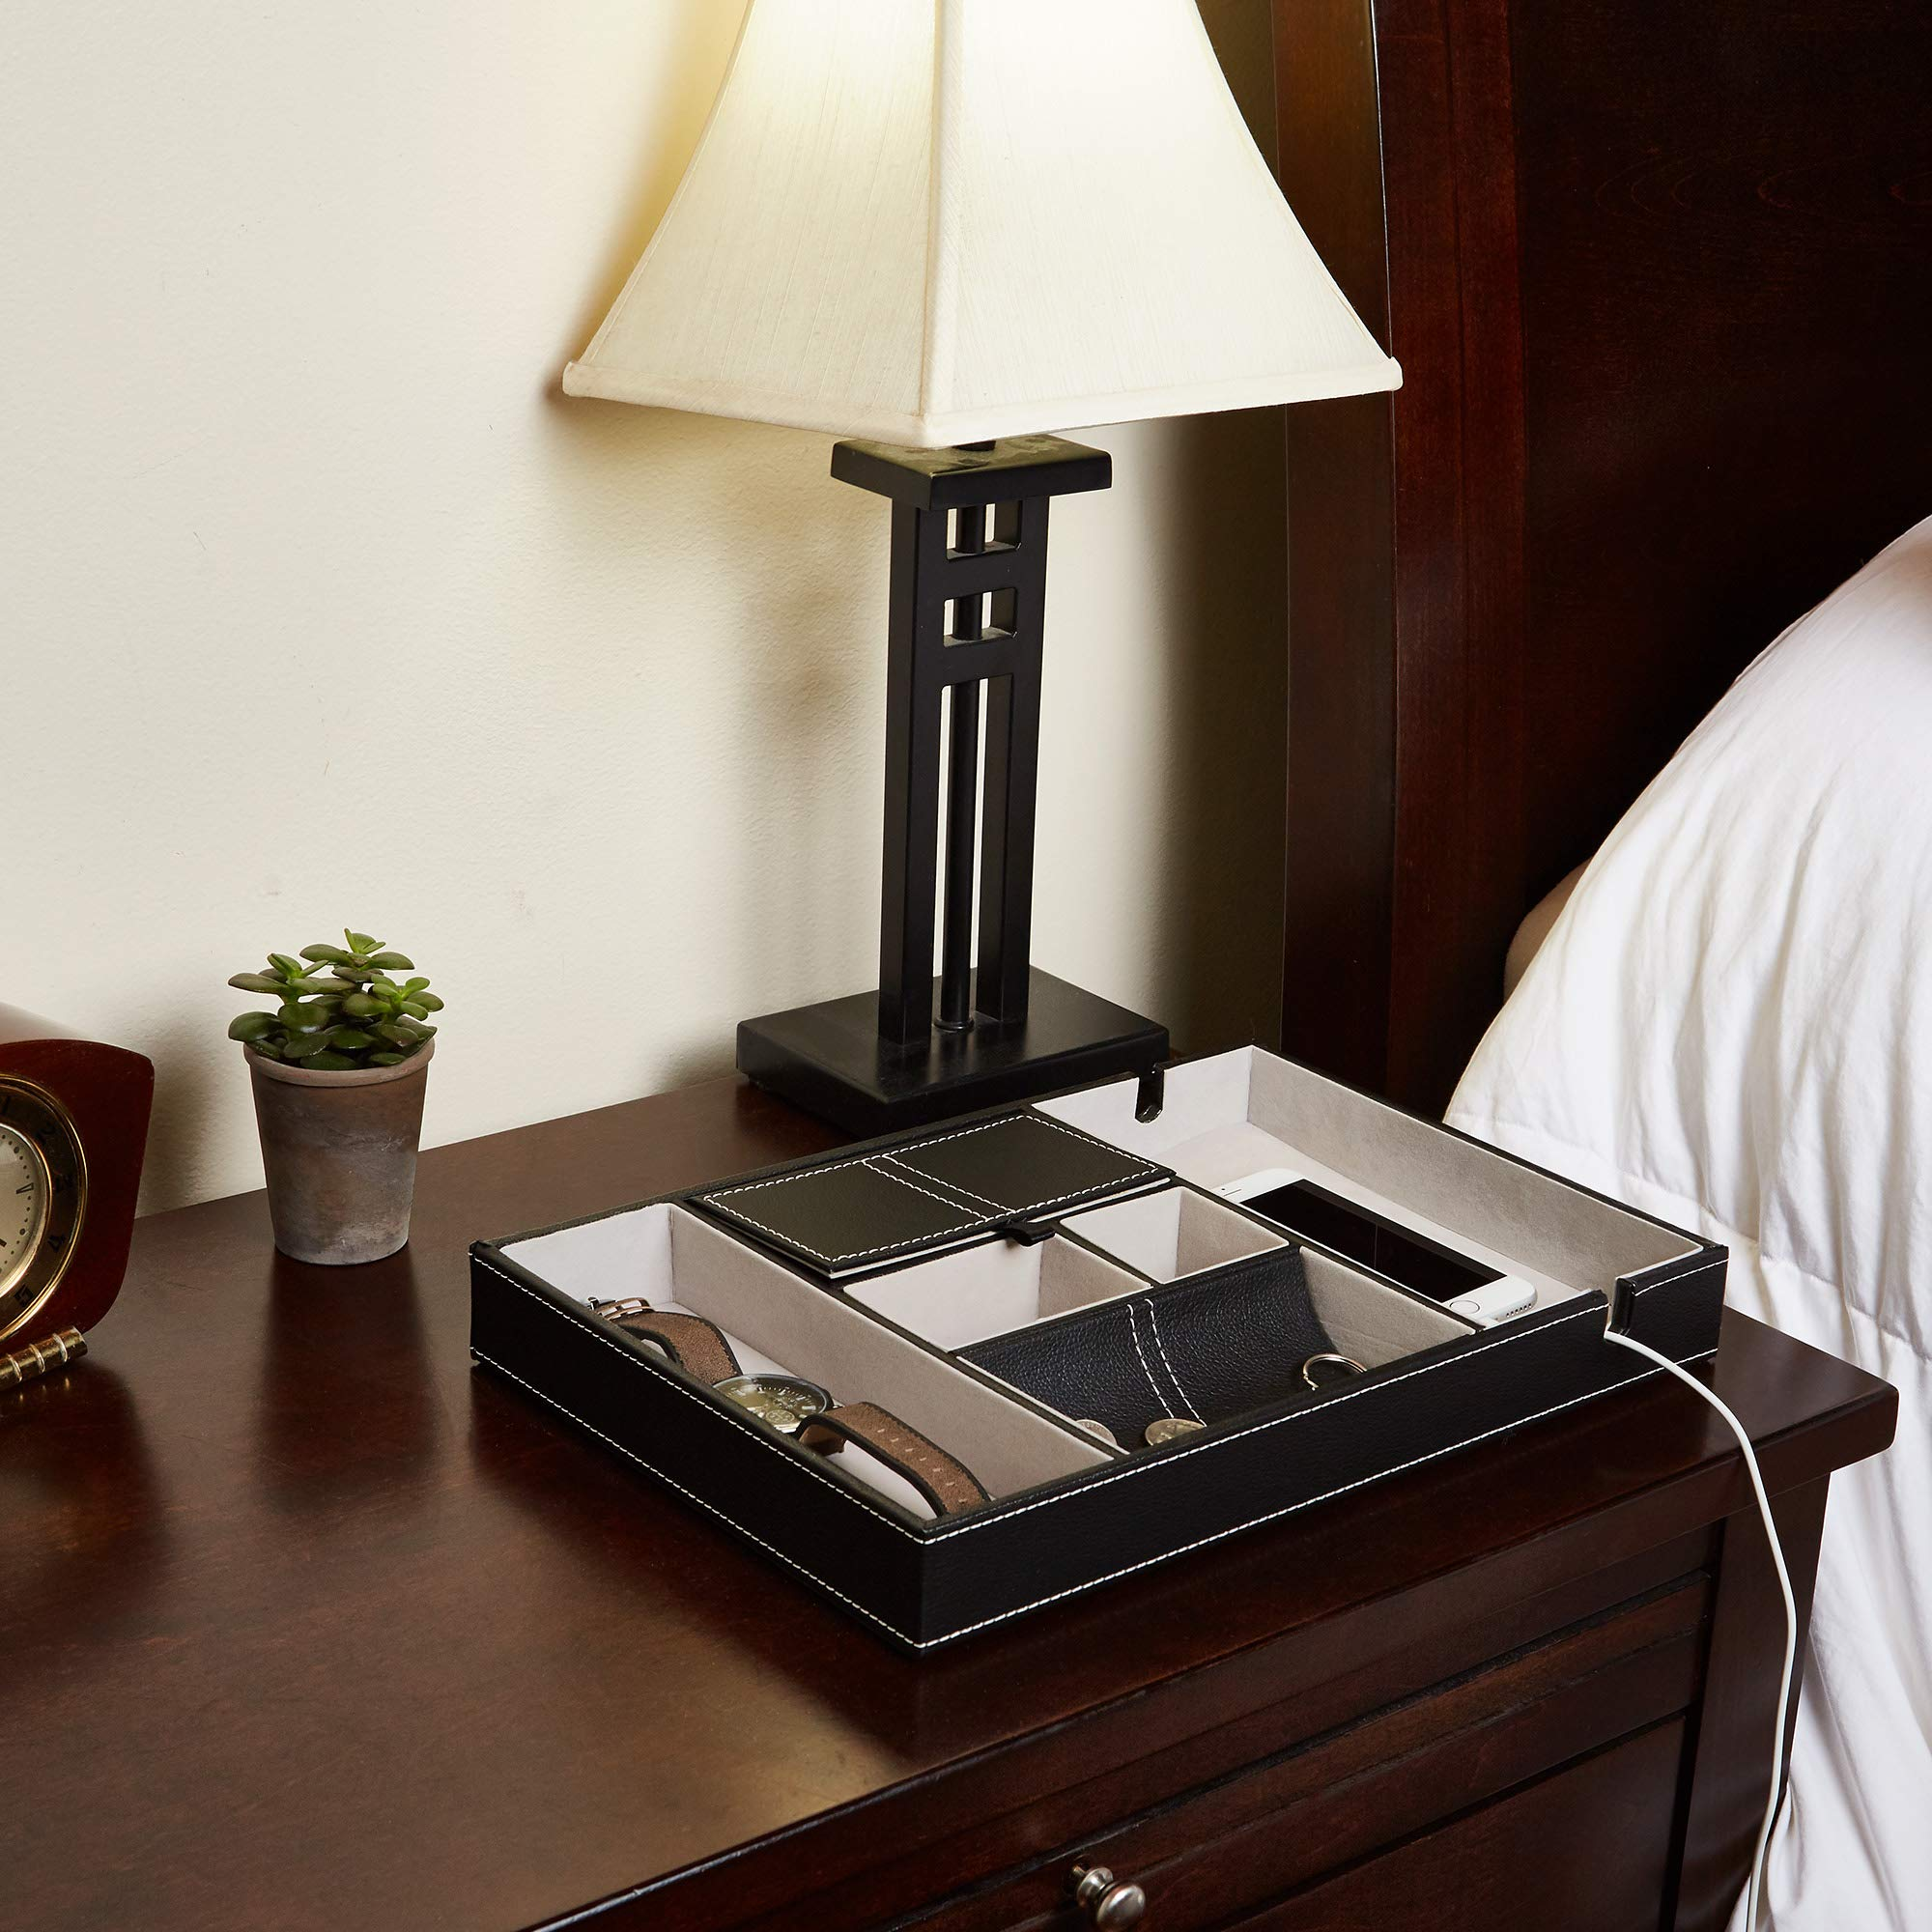 Bedside Tray Organizer - Nightstand Storage Phone/Wallet/Electronics/Charging/Keys/Books/Glasses - Desk/Table/Dresser Caddy - Control Bedside Organizers - Men/Women Smartphone/Jewelry Compartment by TutisD (Image #3)